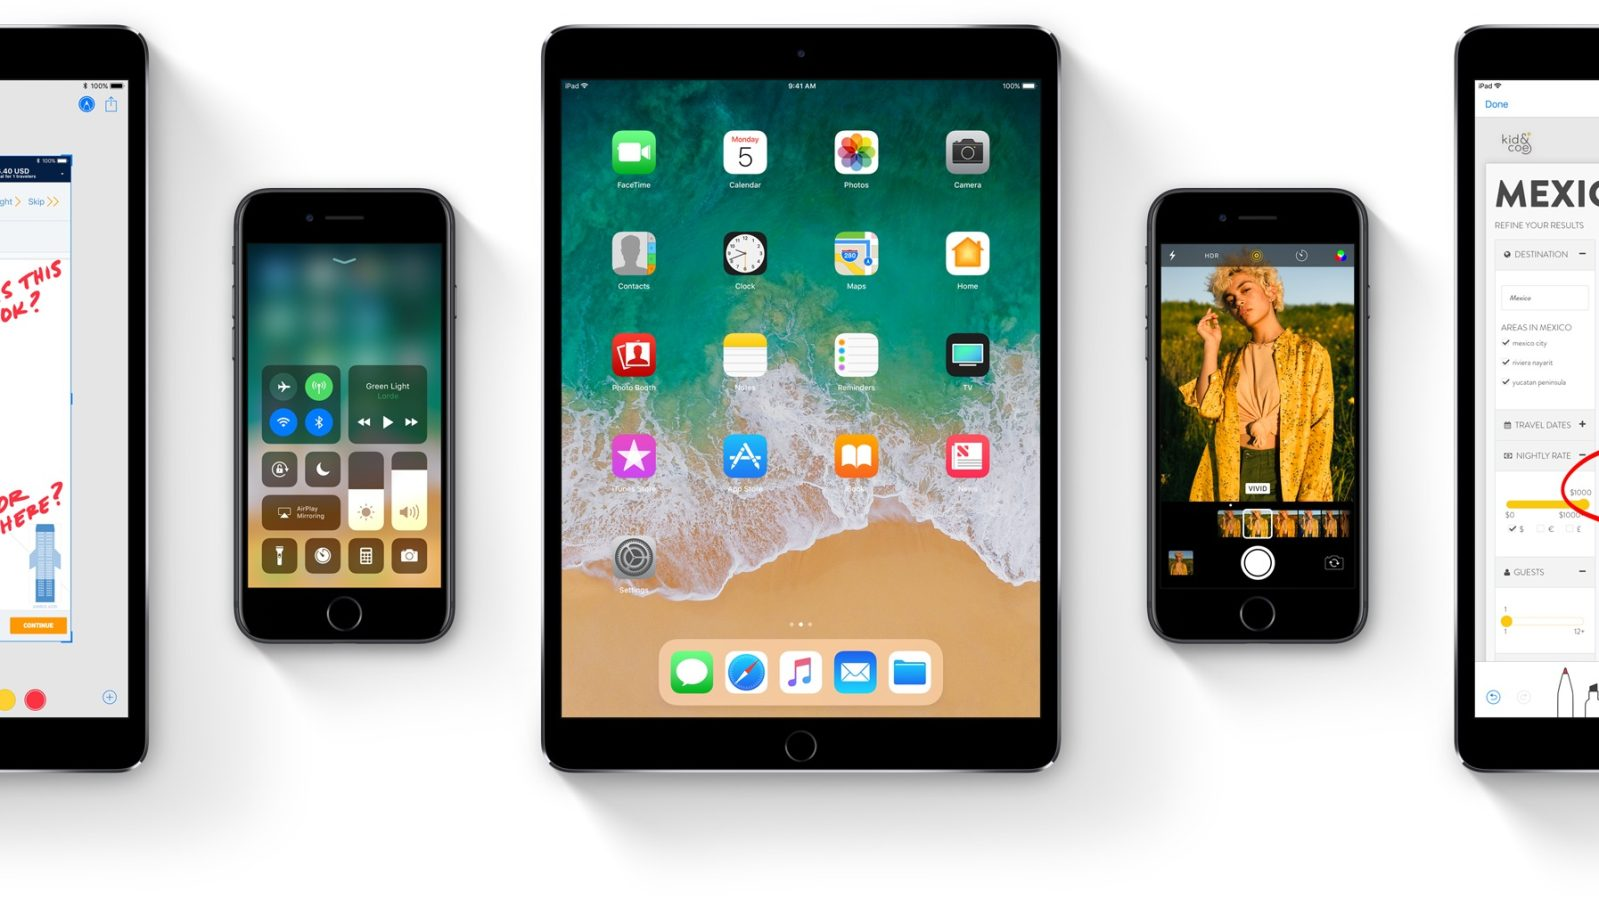 Apple updates Pages, Numbers, and Keynote with new iOS 11 features